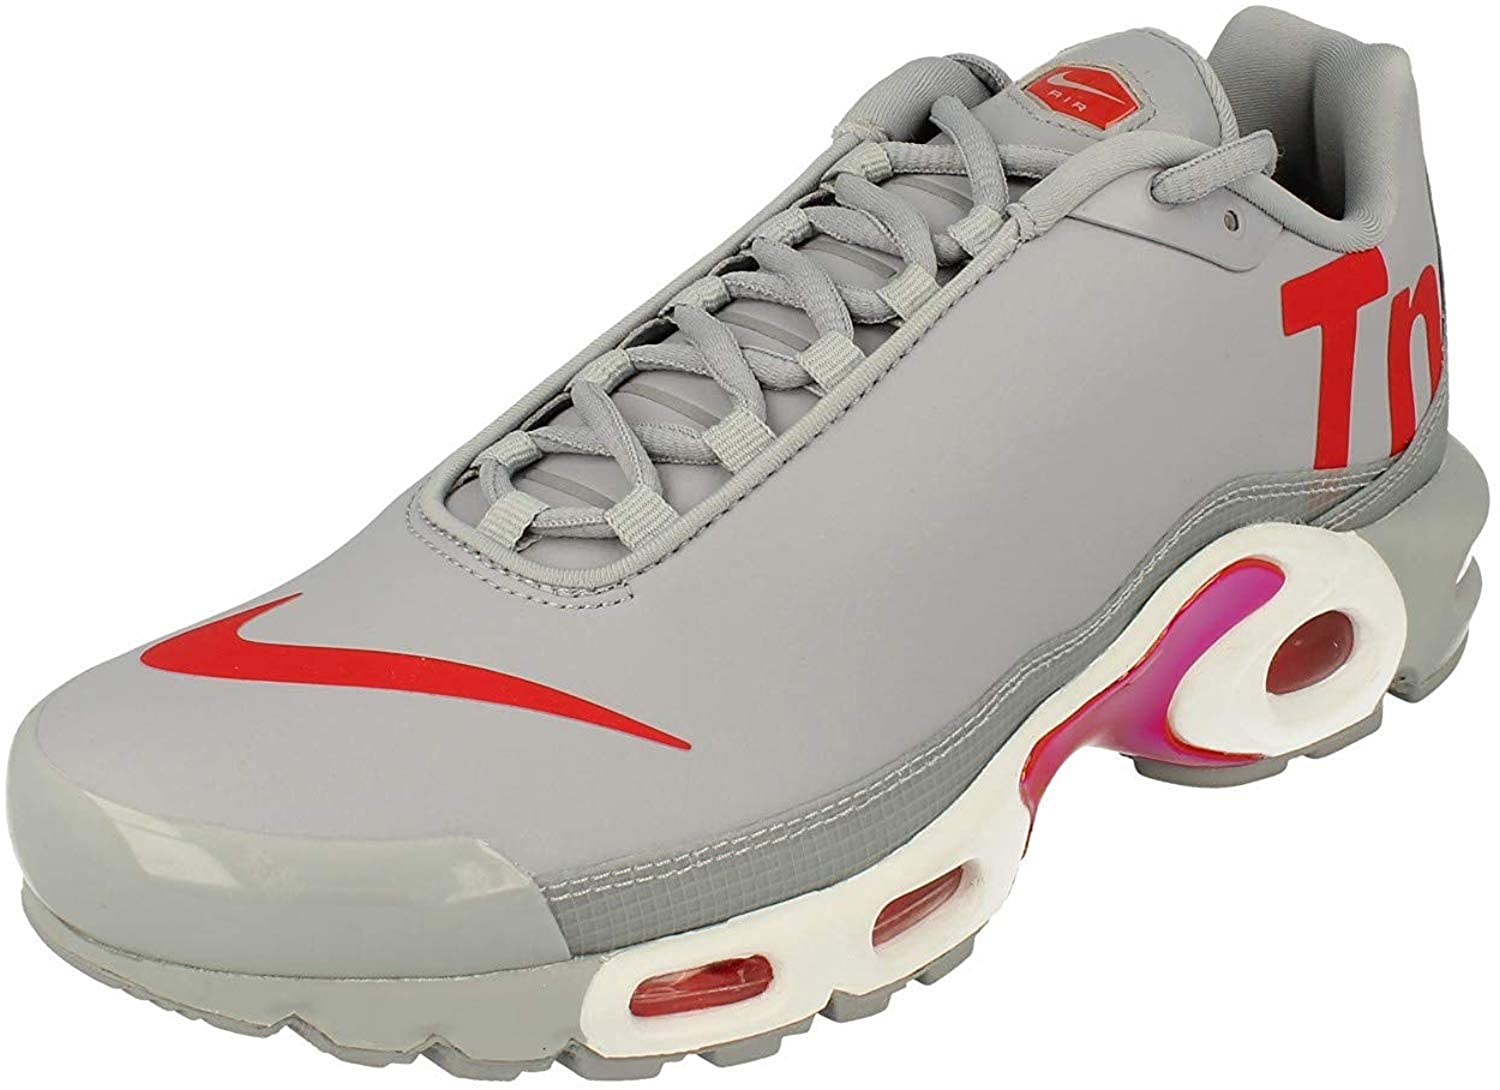 air max plus tn se hommes running trainers aq1088 sneakers chaussures